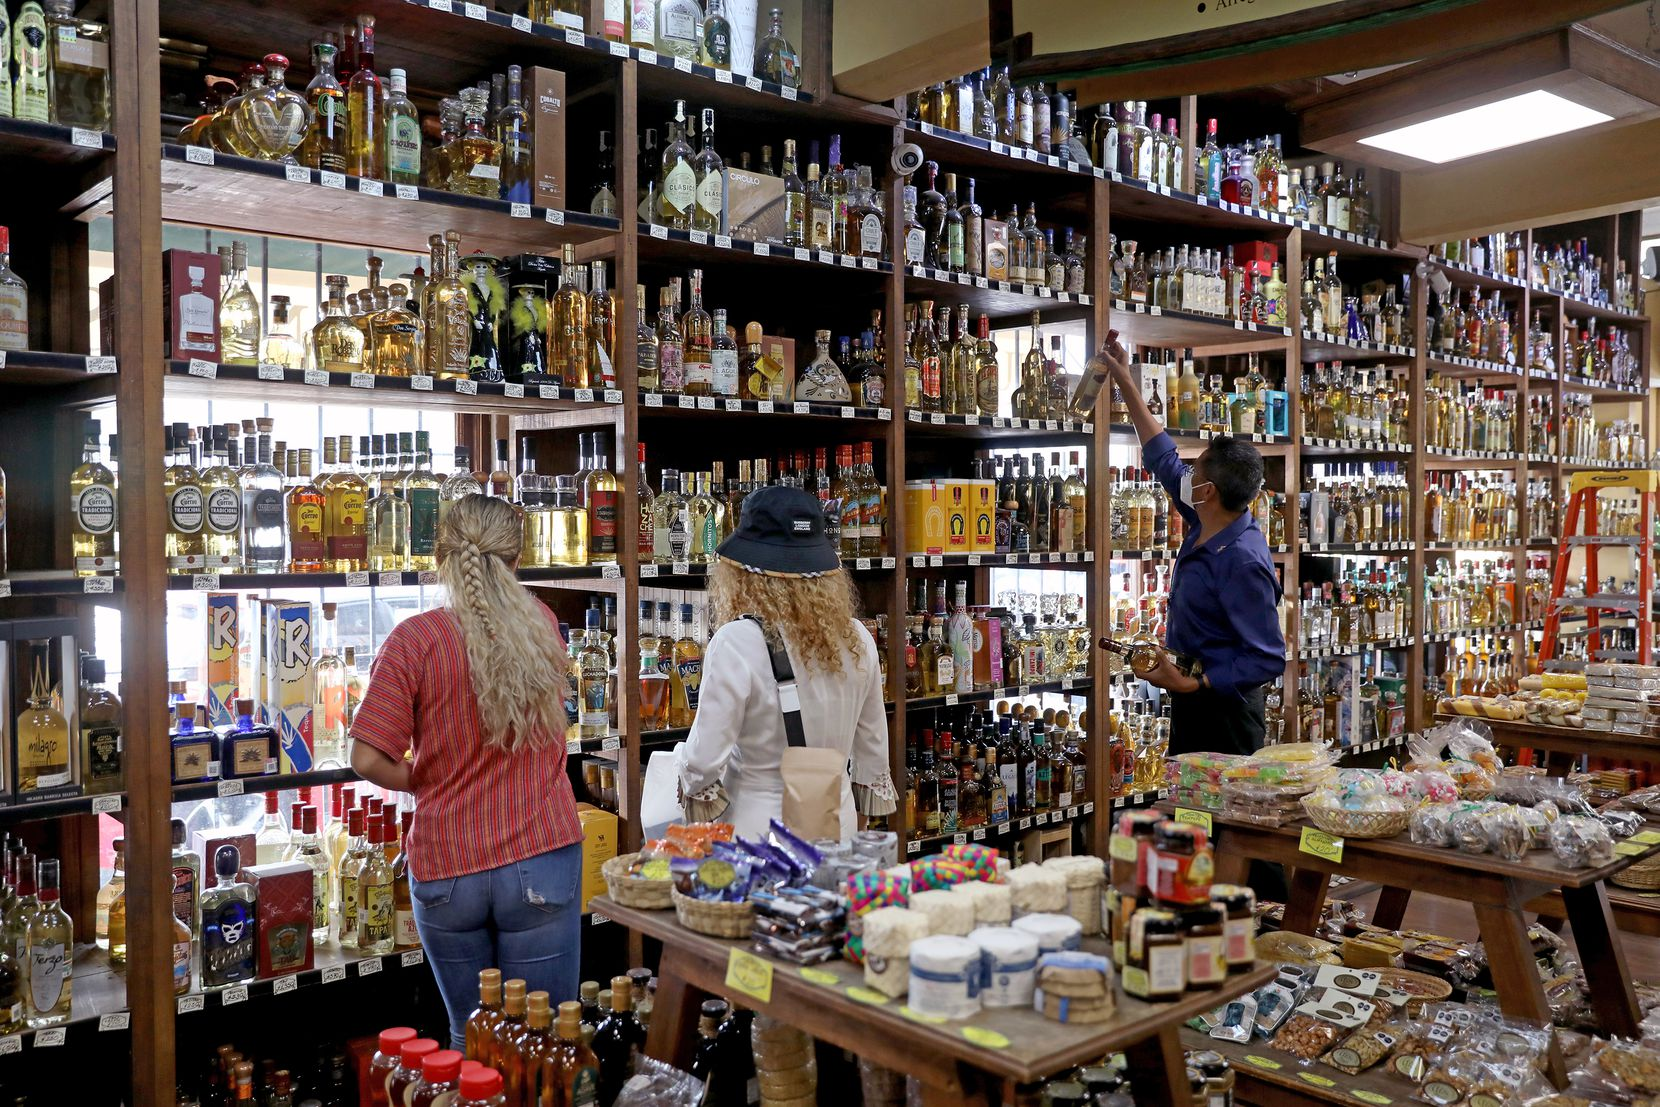 A wide variety of tequila available for sale at Nuestros Dulces store on July 25 in Tlaquepaque, Jalisco.